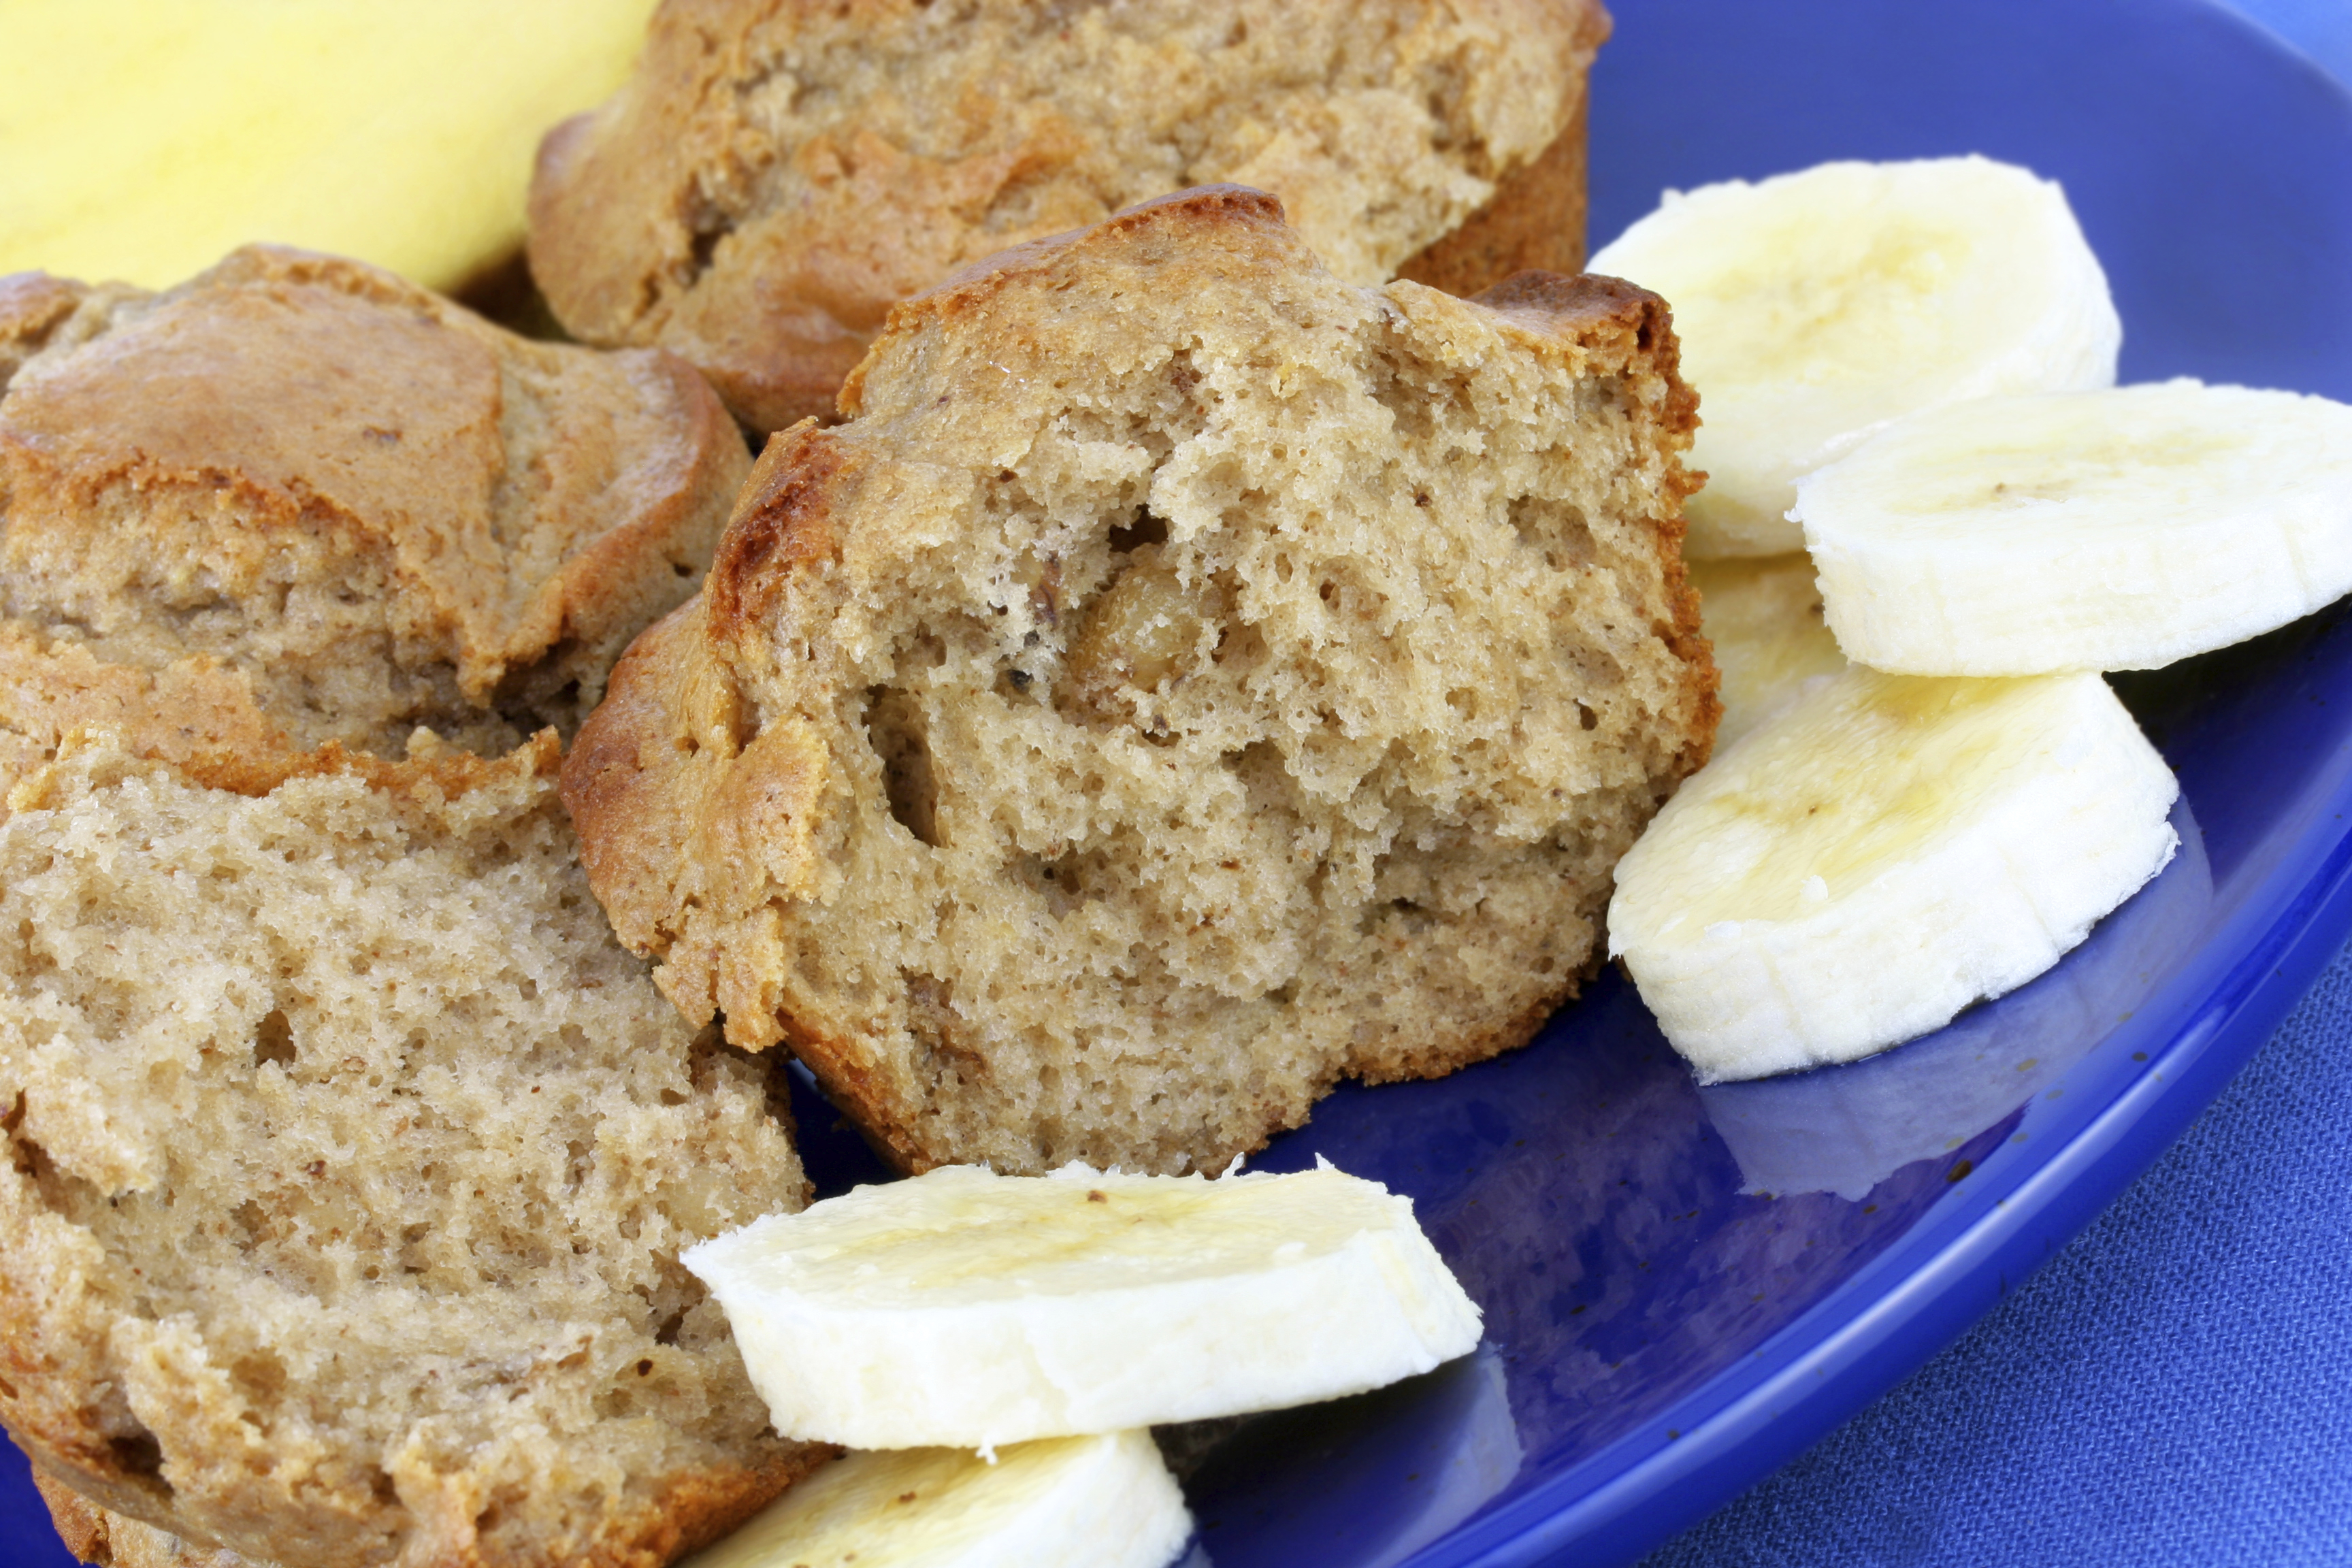 Banana muffins, fresh from the oven, with sliced banana.